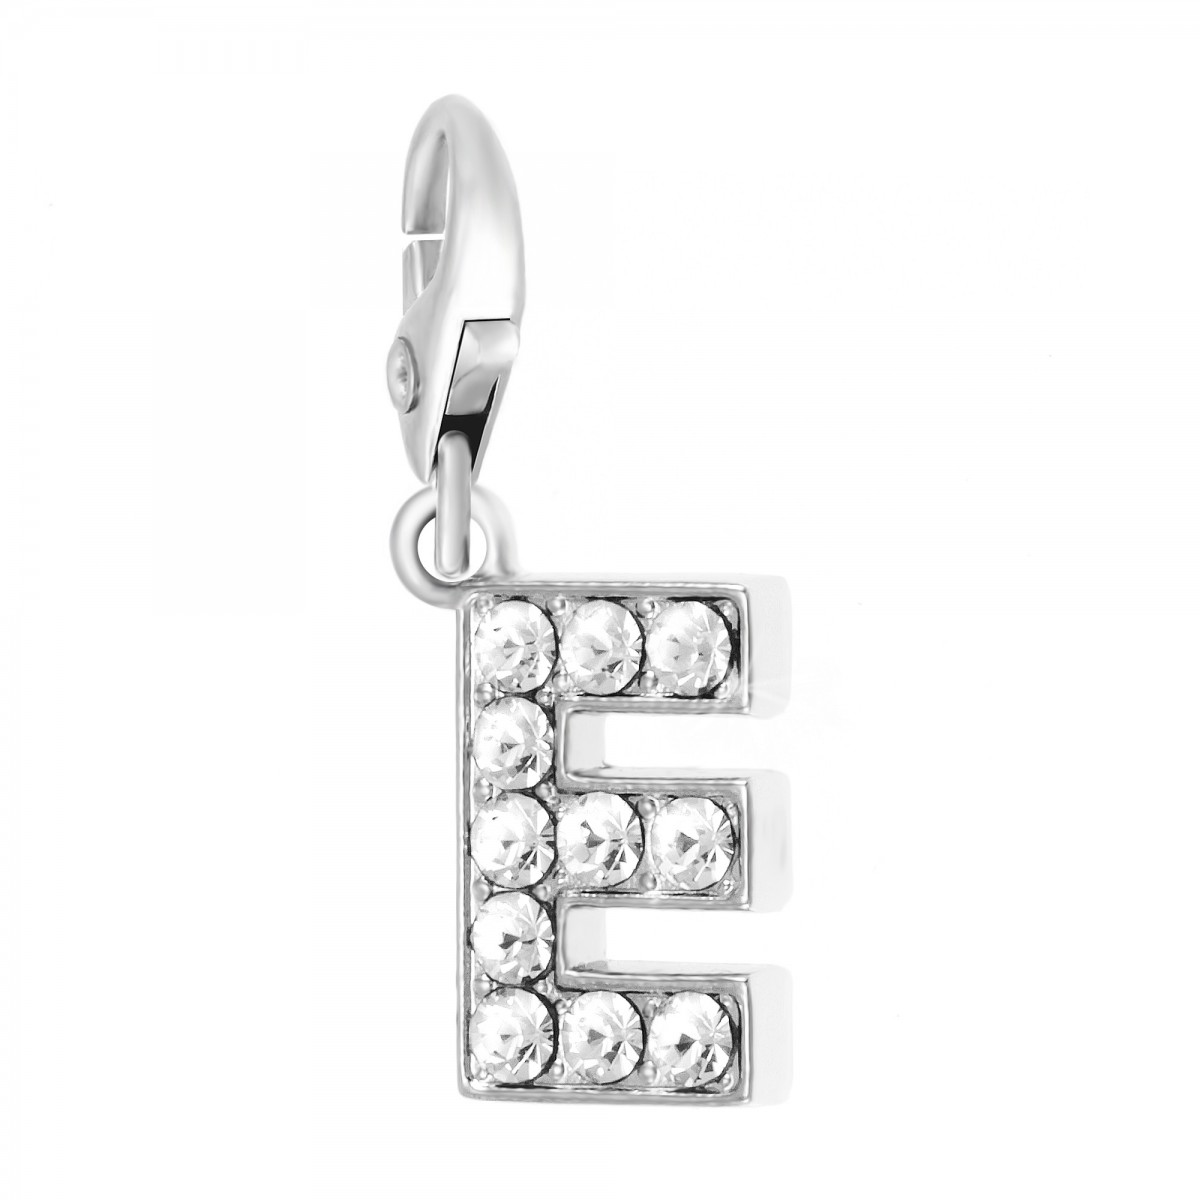 Charm Lettre E So Charm made with Crystal from Swarovski